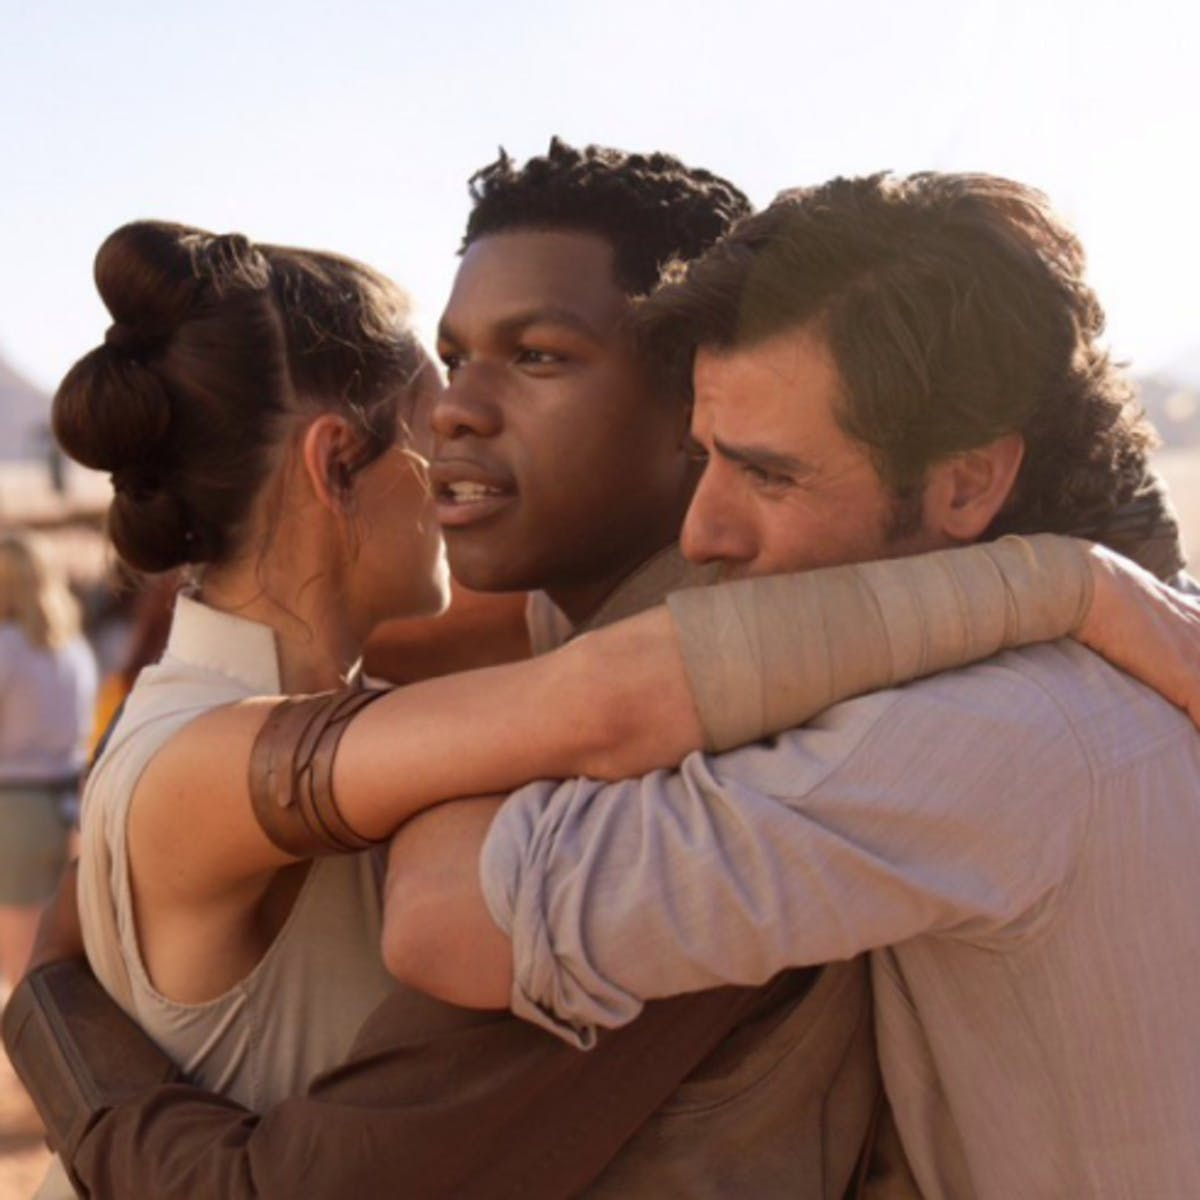 'Star Wars 9' trailer 3 release date leaks cleared up by John Boyega